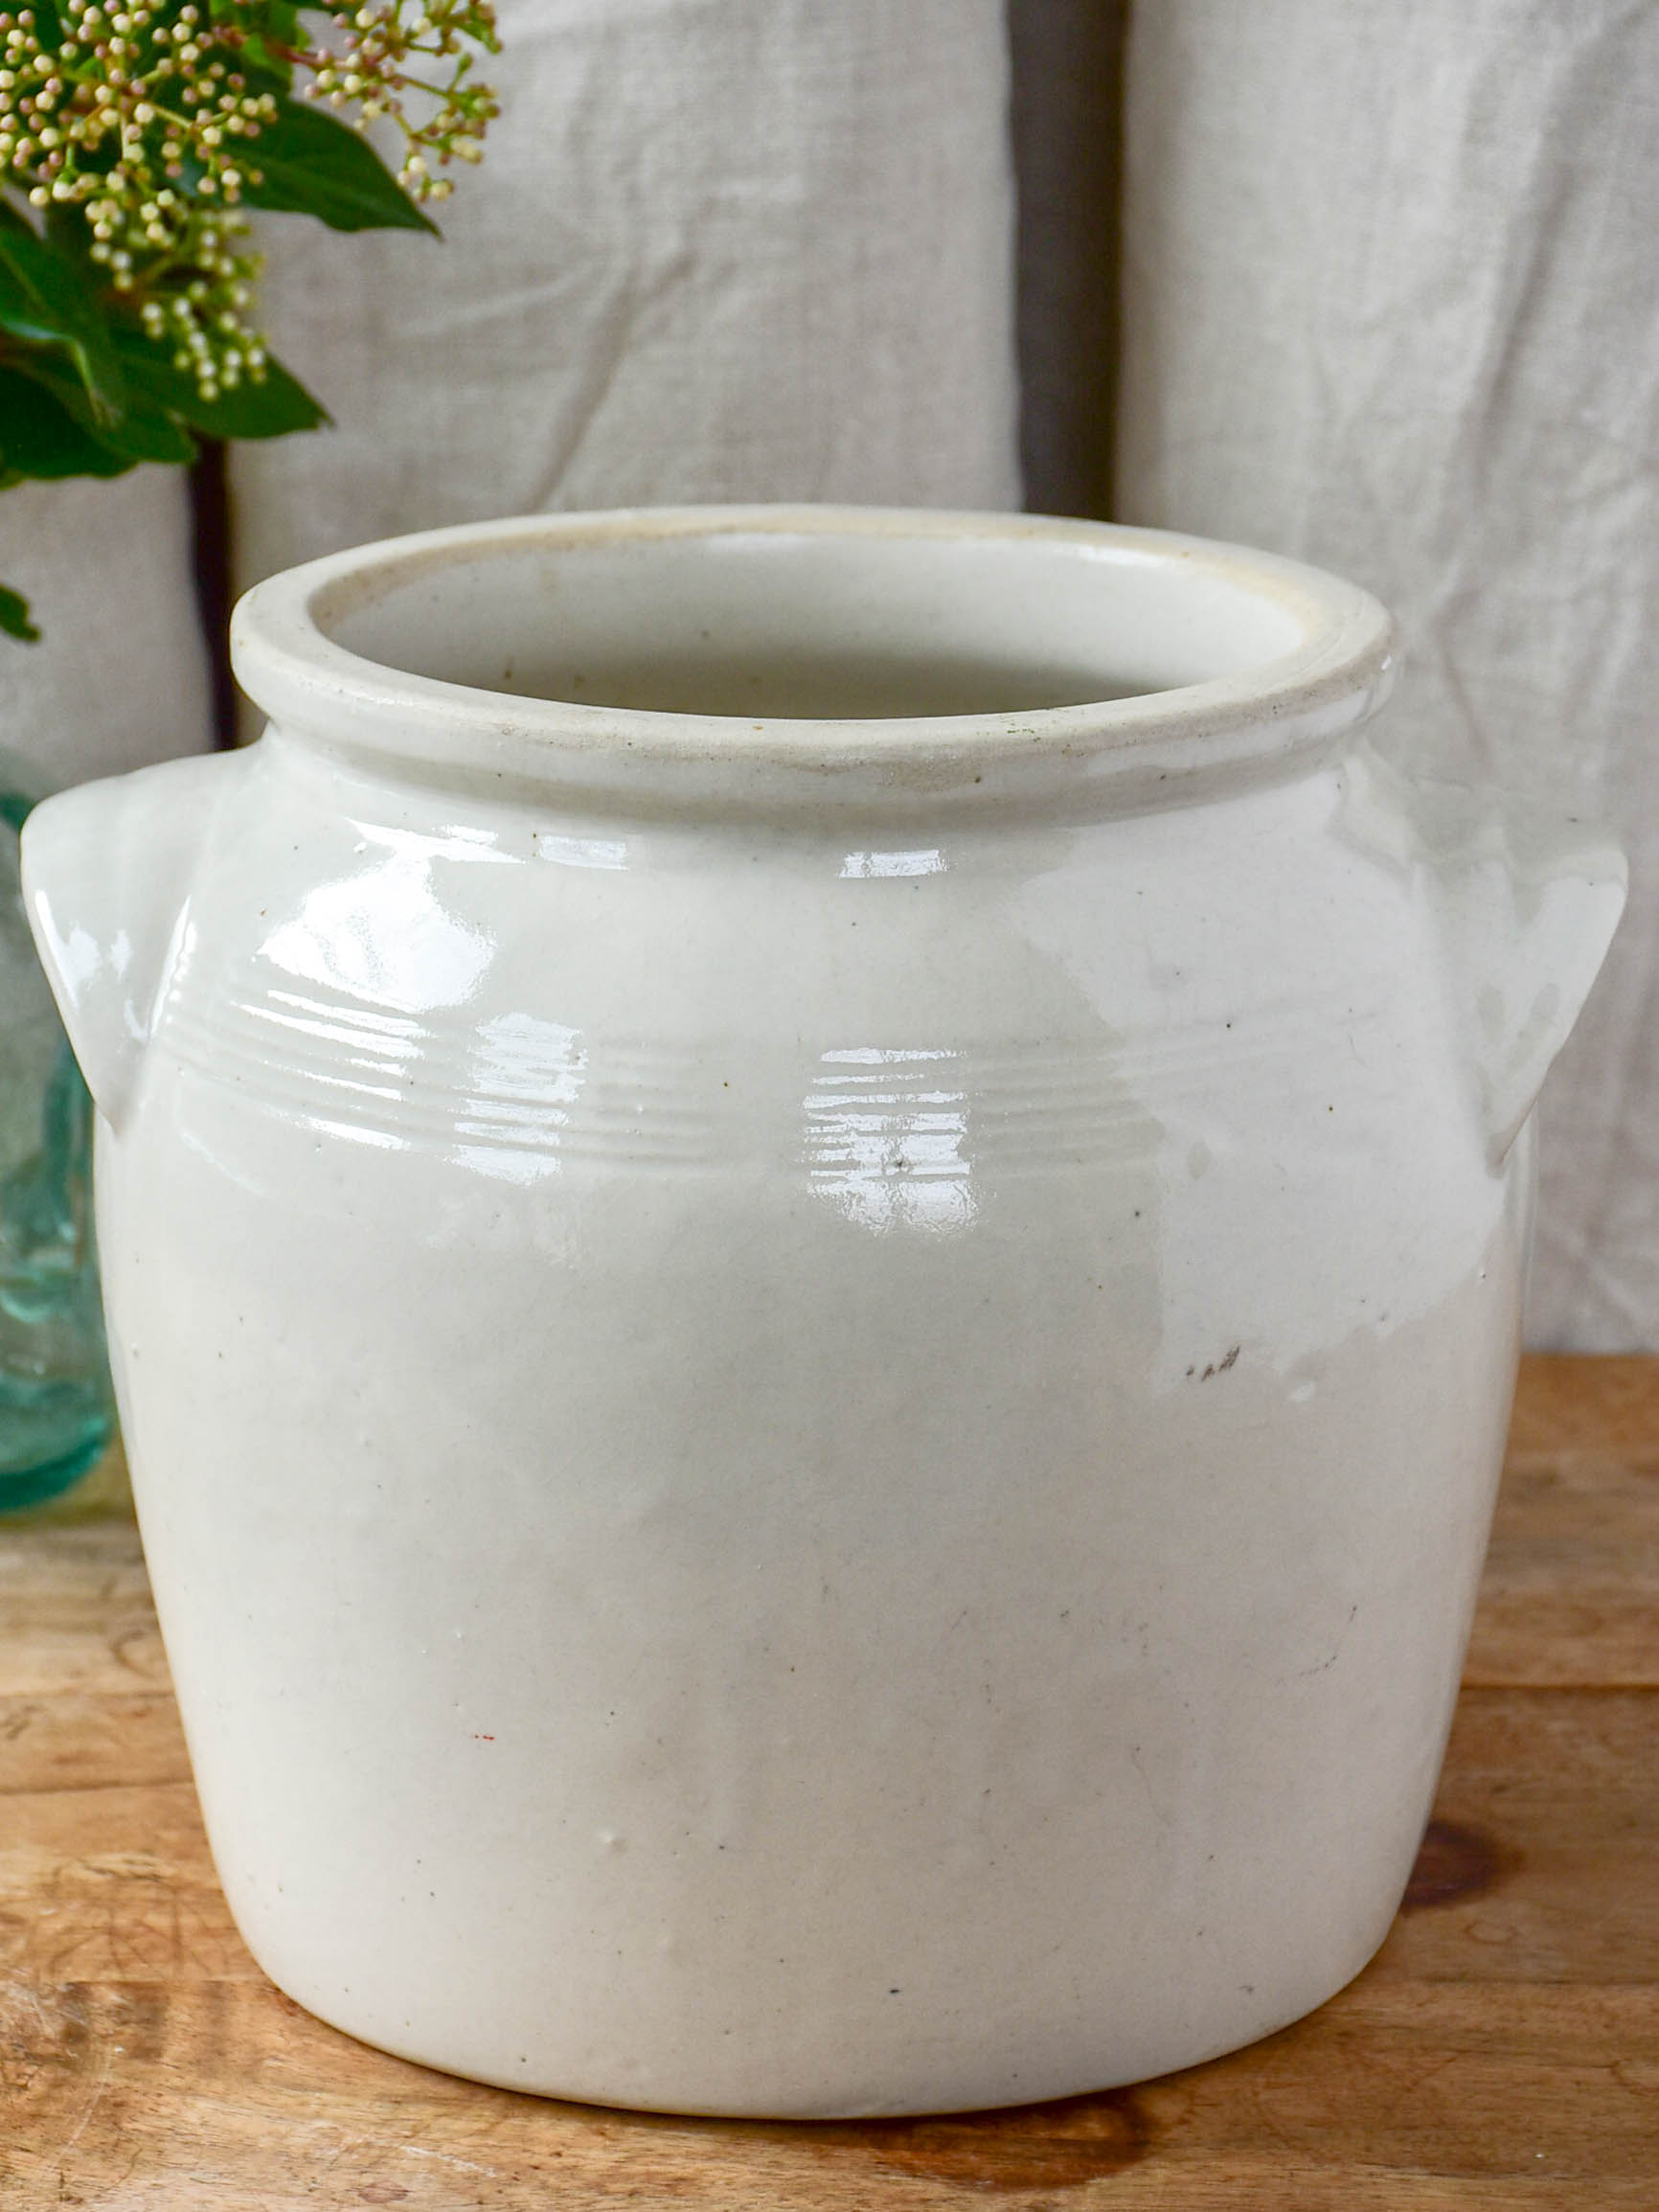 Early 20th century French preserving pot